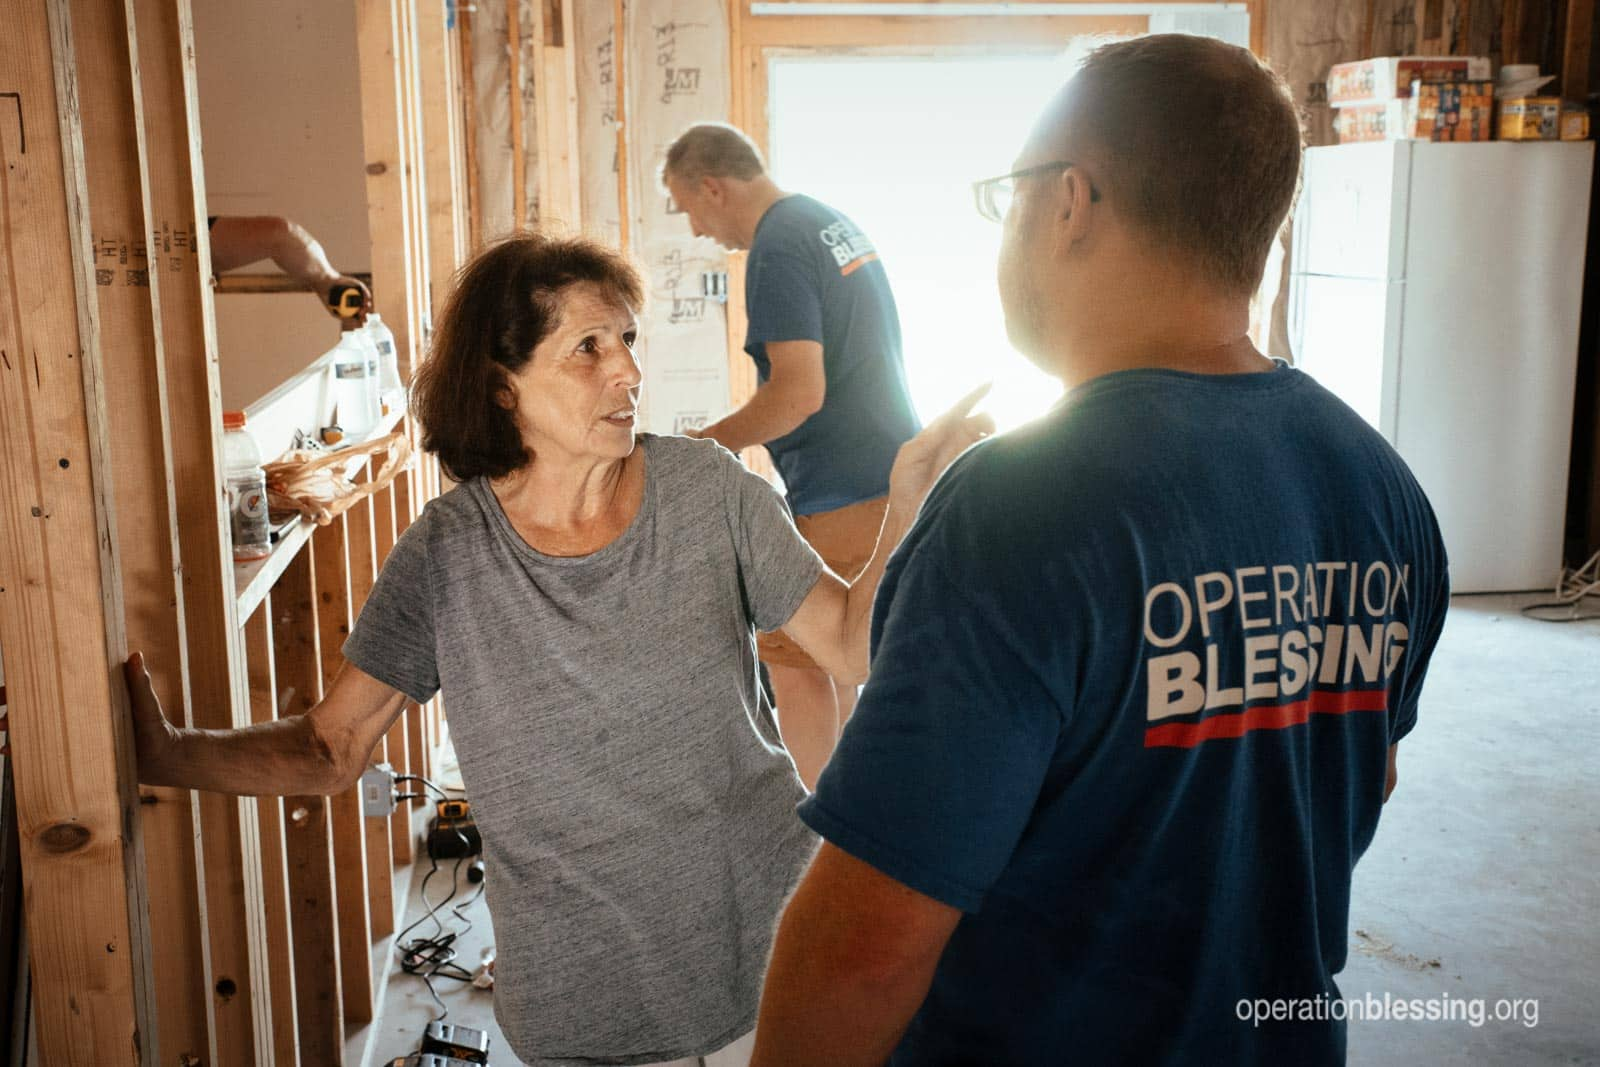 Ms. Peterson talking with Operation Blessing volunteers.